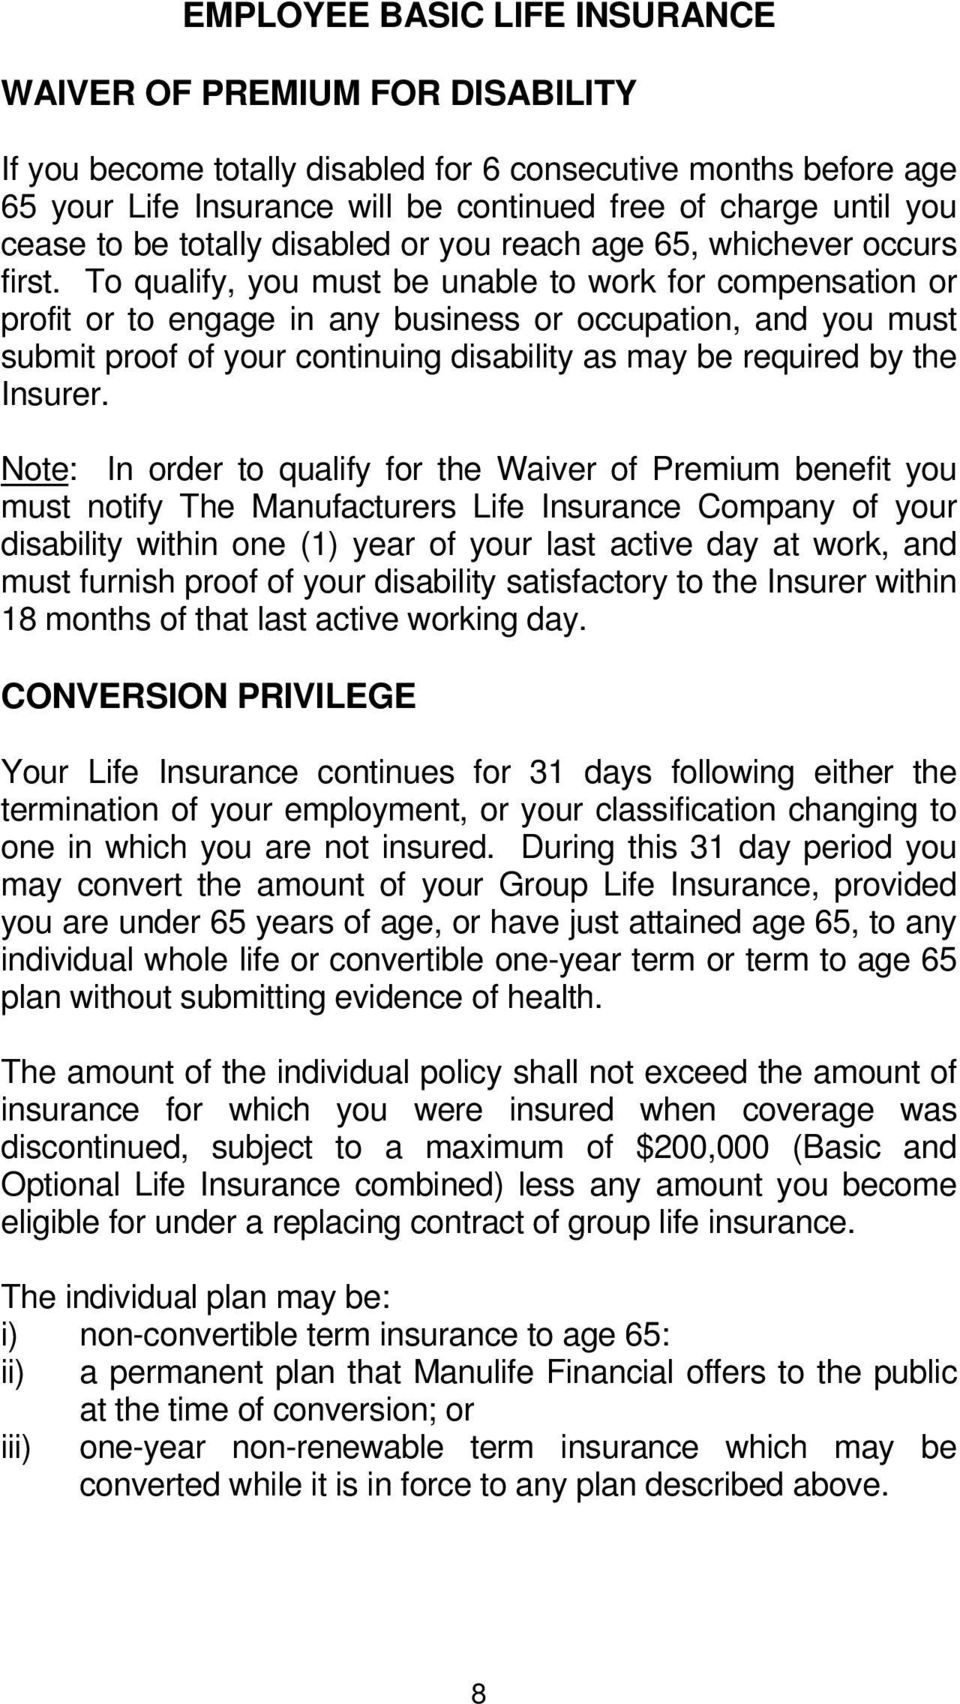 To qualify, you must be unable to work for compensation or profit or to engage in any business or occupation, and you must submit proof of your continuing disability as may be required by the Insurer.